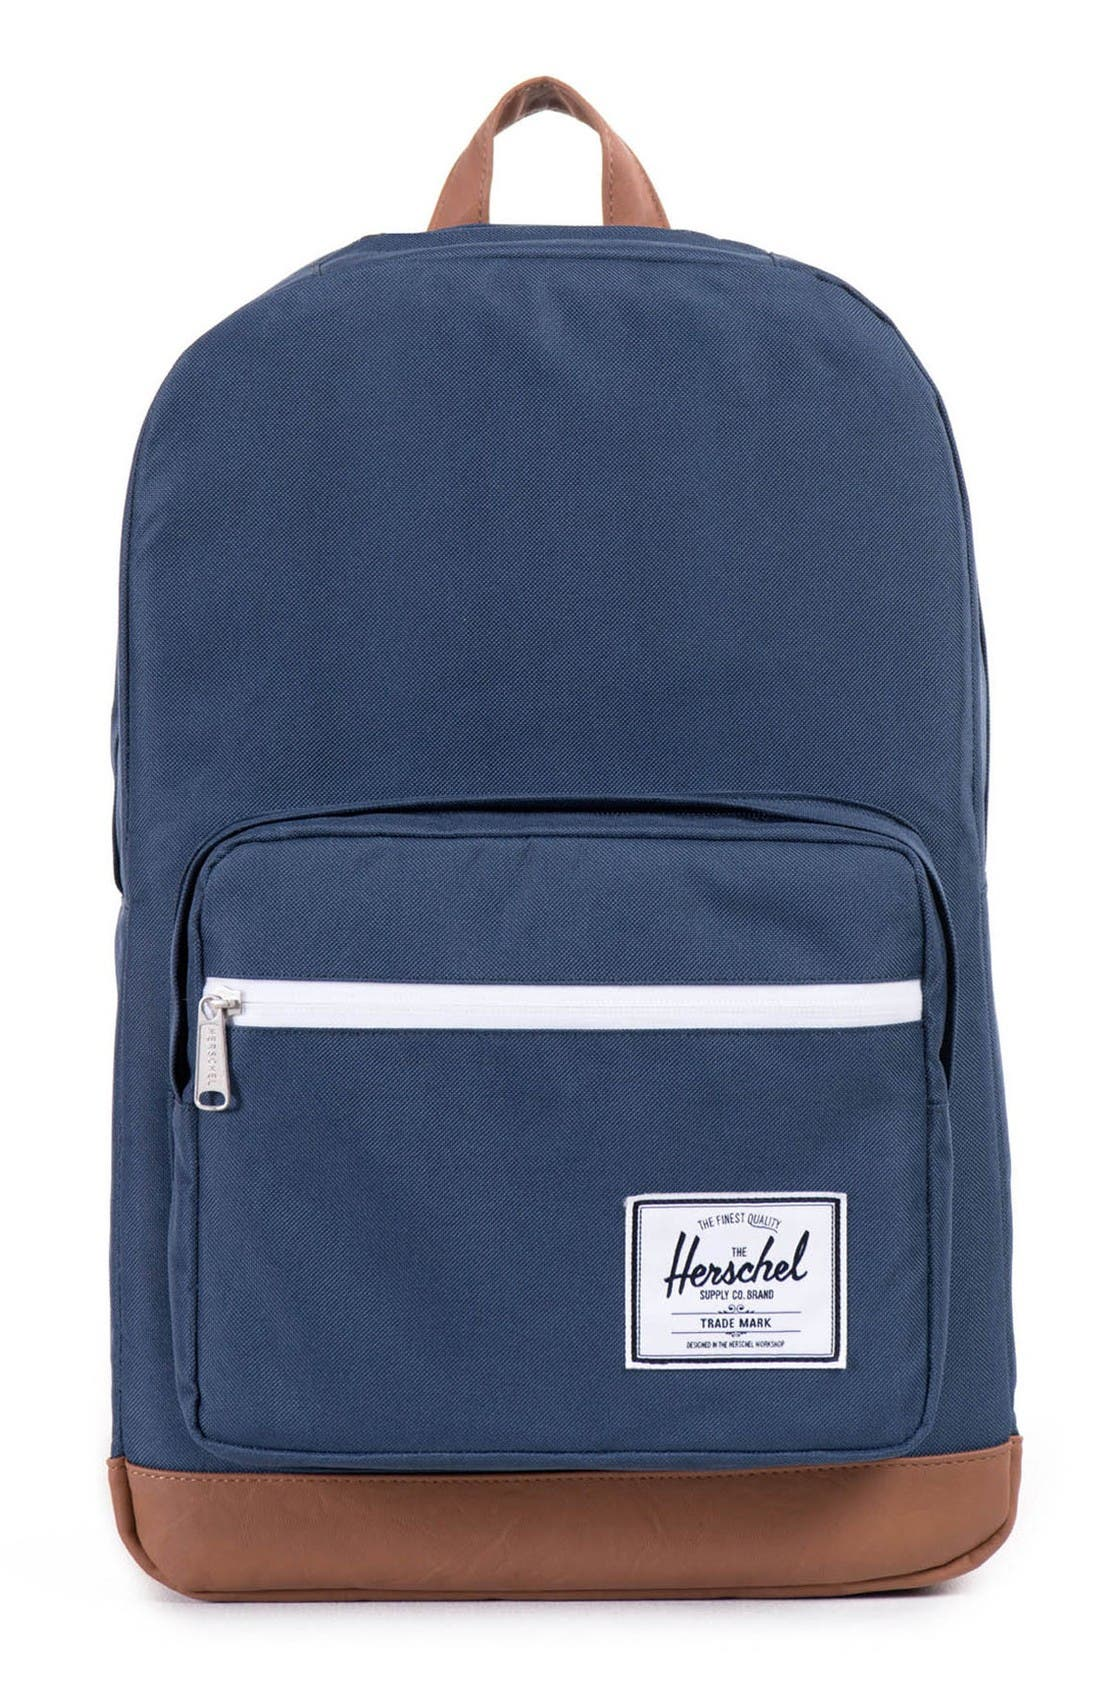 528877a189d Herschel Backpacks